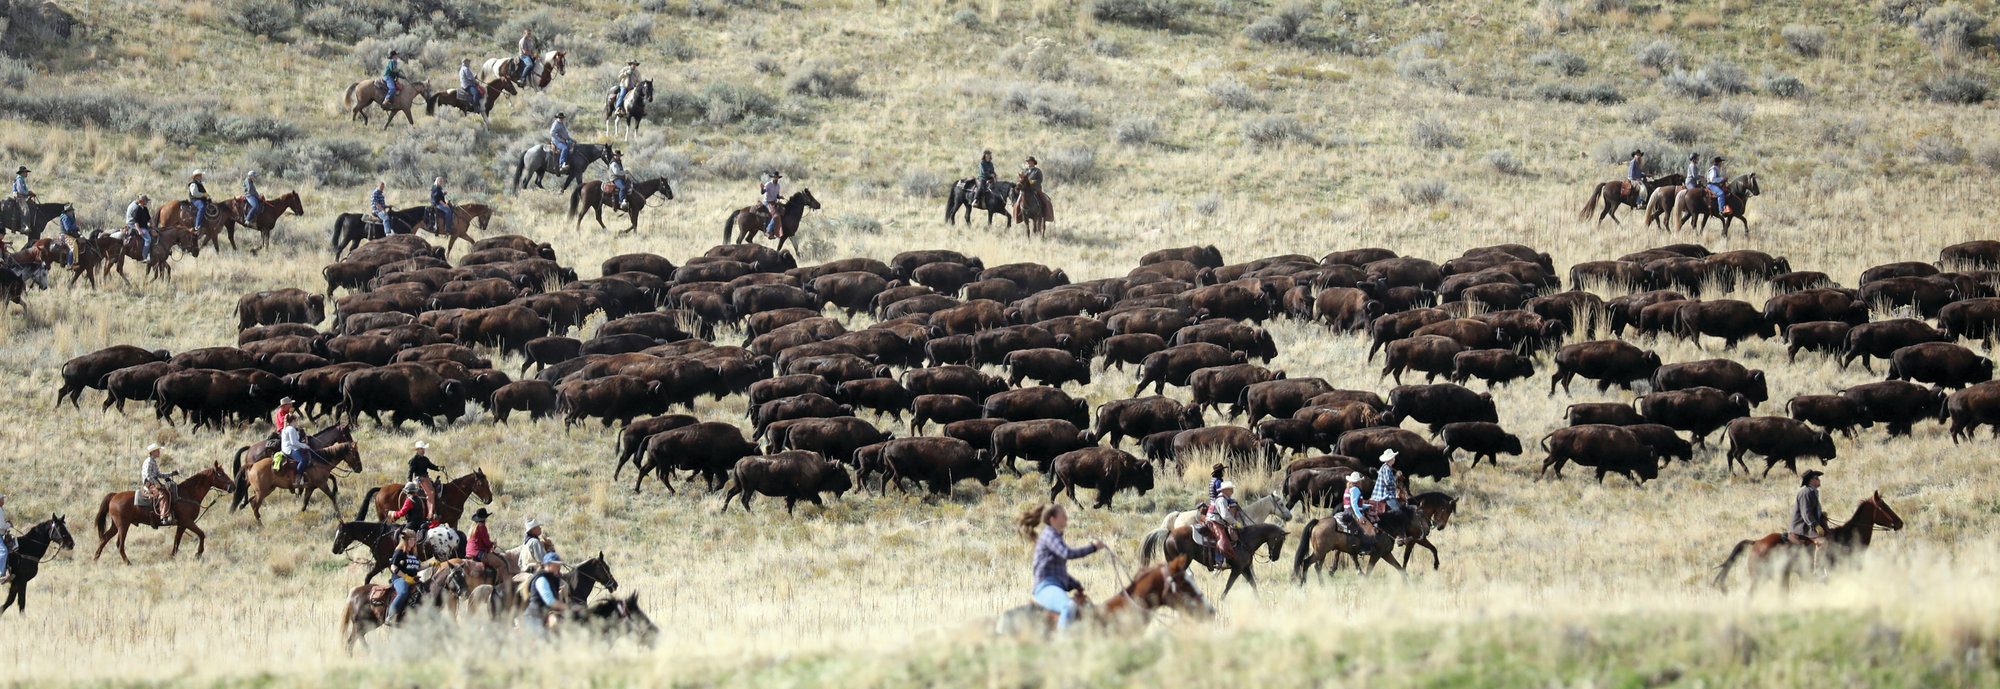 Riders on horseback herd bison during an annual roundup in October on Antelope Island, Utah. Utah State Parks workers move the animals from across the island so they can be weighed, tagged and given health checkups.